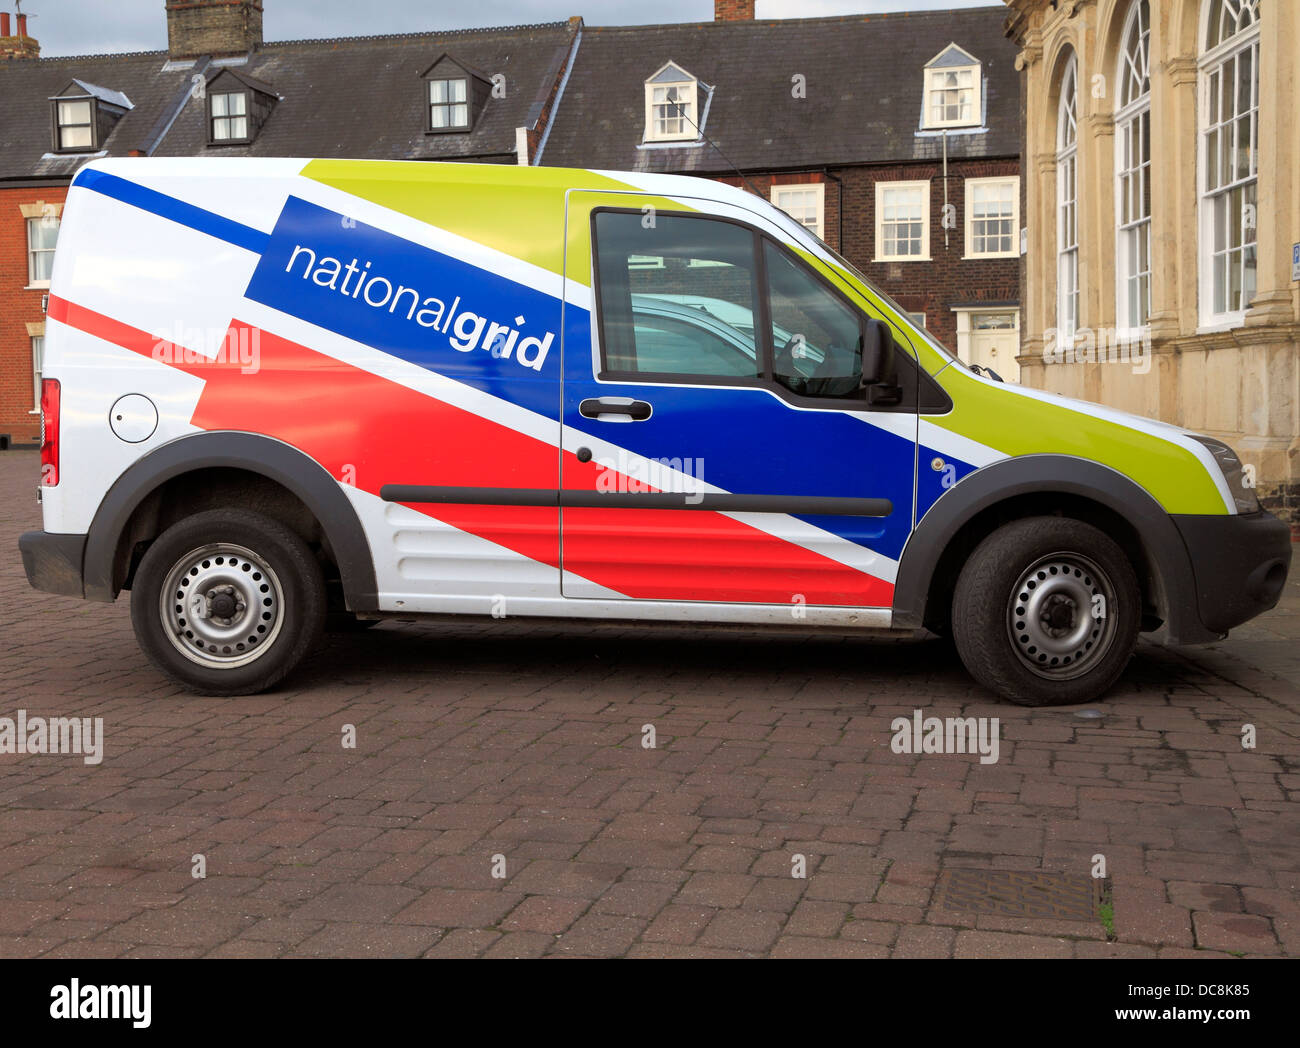 National grid uk stock photos national grid uk stock images alamy national grid van vehicle nationalgrid logo england uk vans vehicles stock image biocorpaavc Image collections